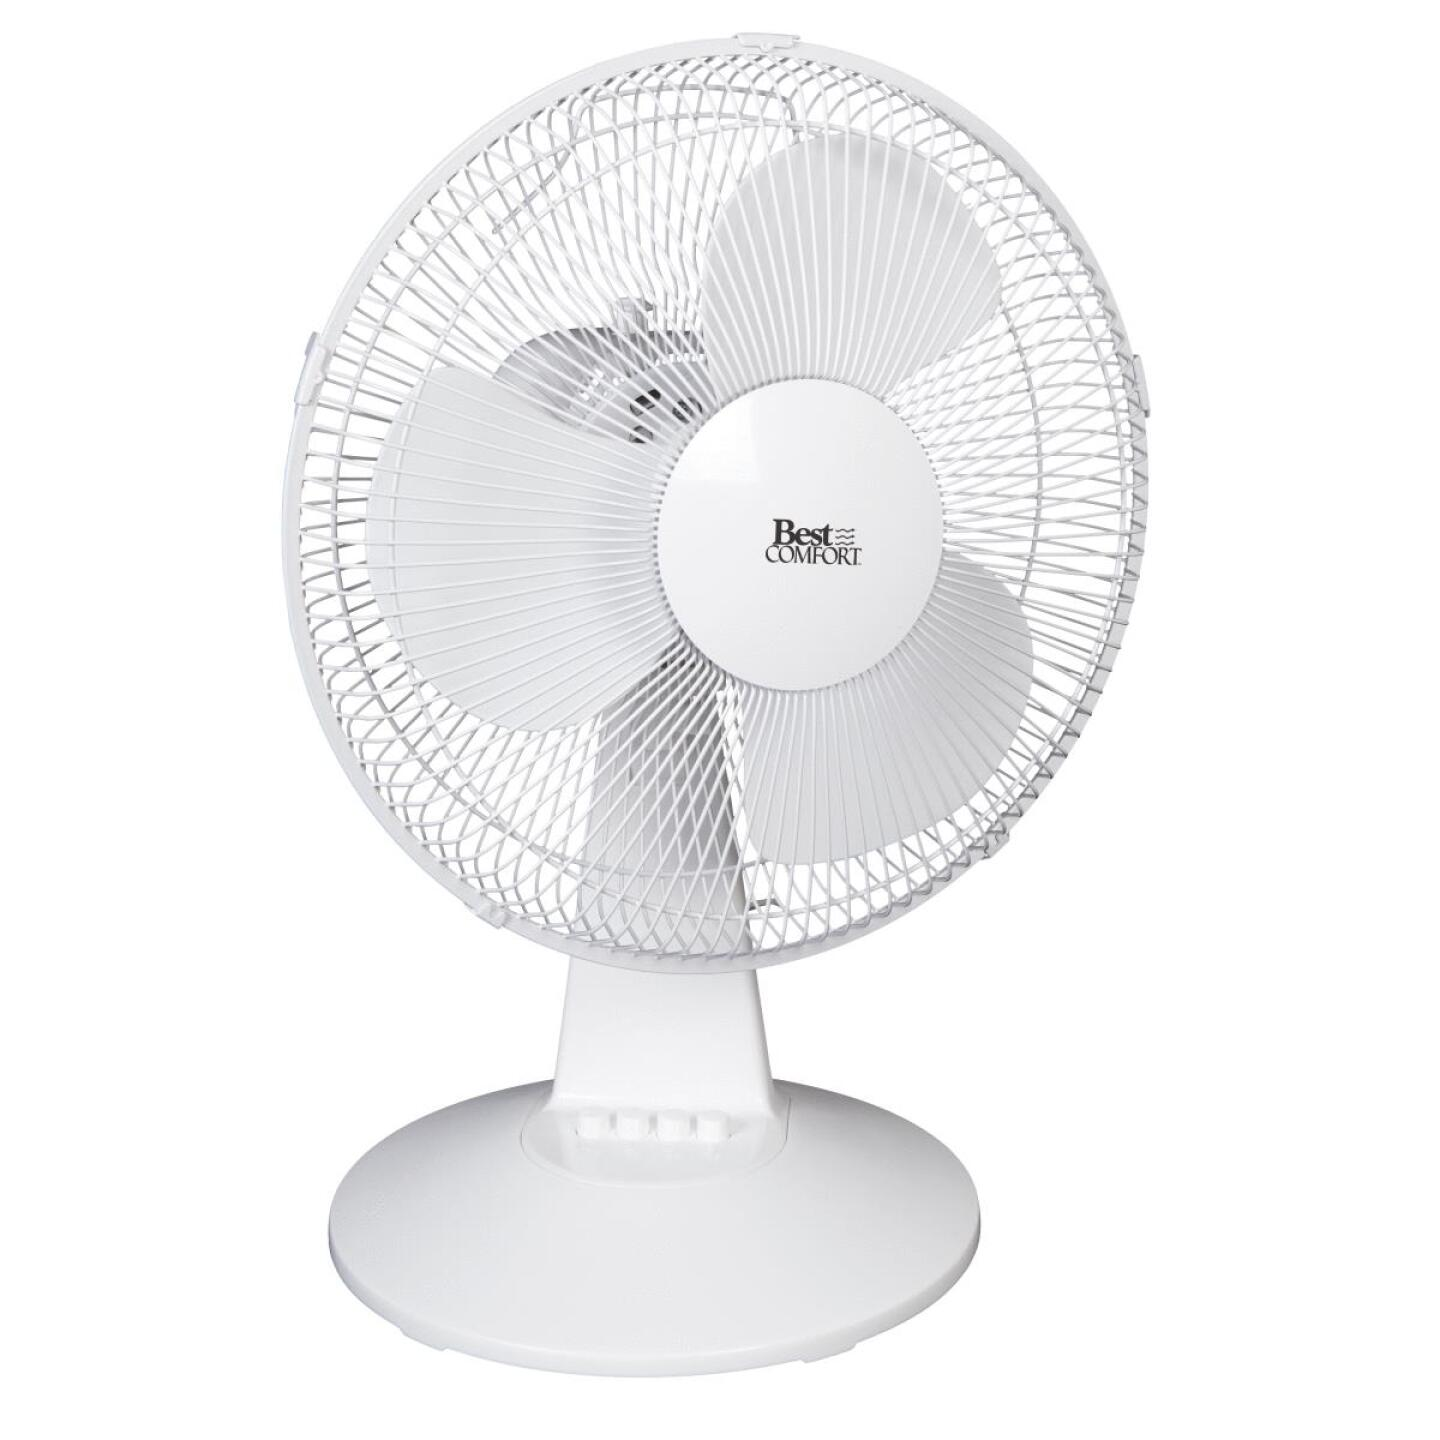 Best Comfort 12 In. 3-Speed White Oscillating Table Fan Image 1